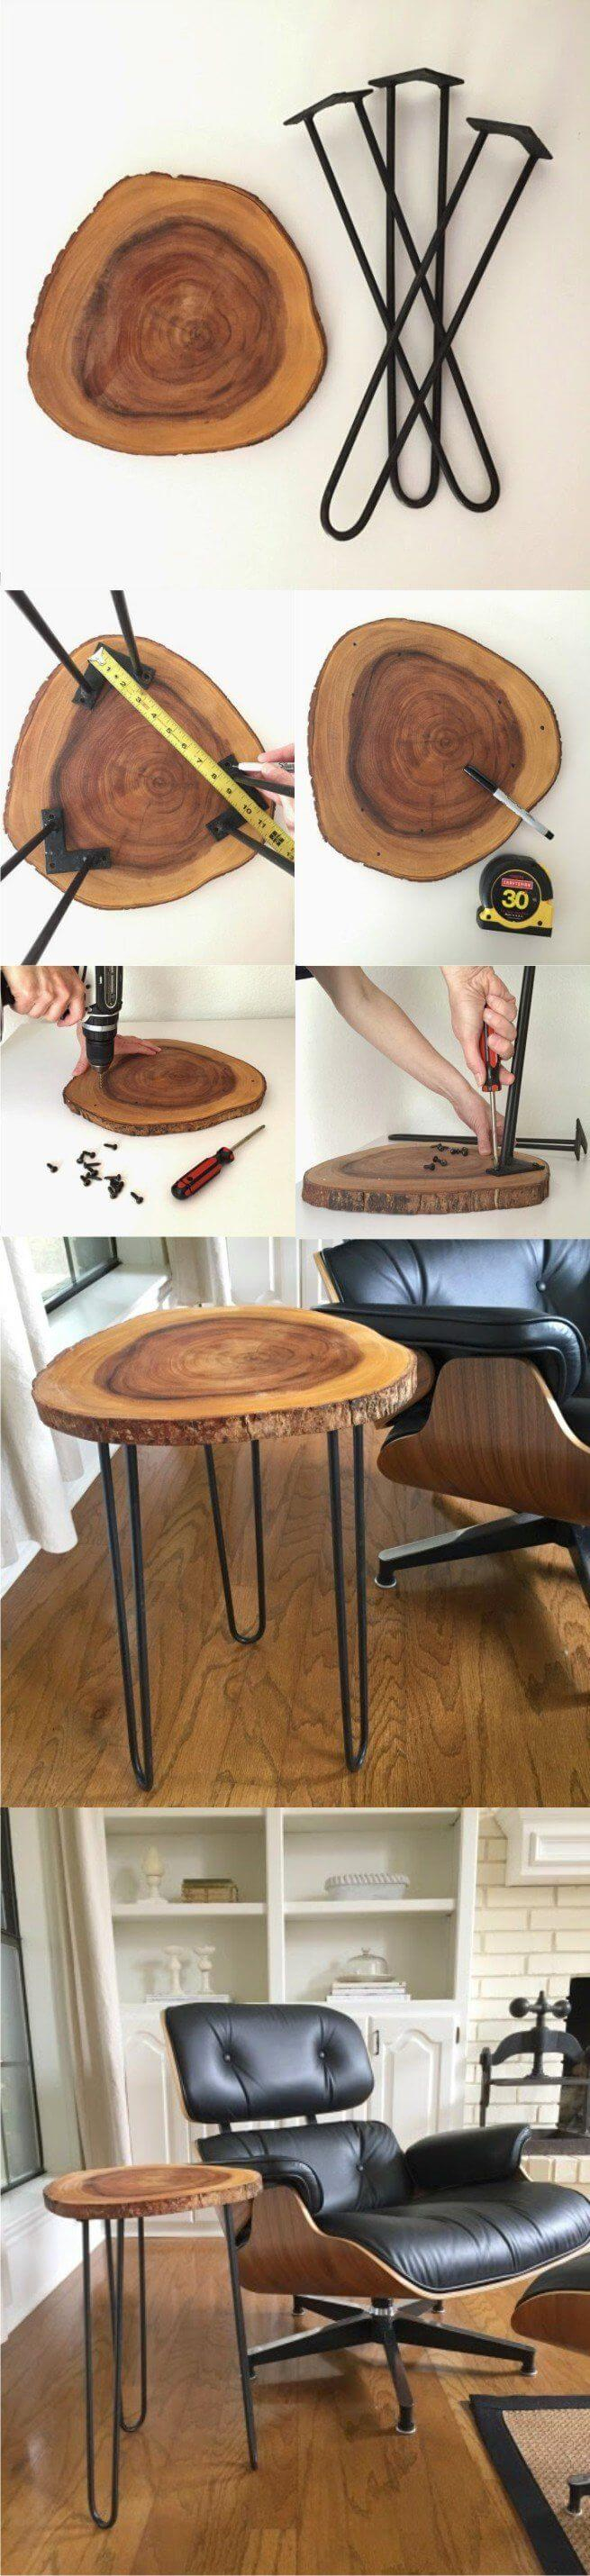 Wood Craft Ideas